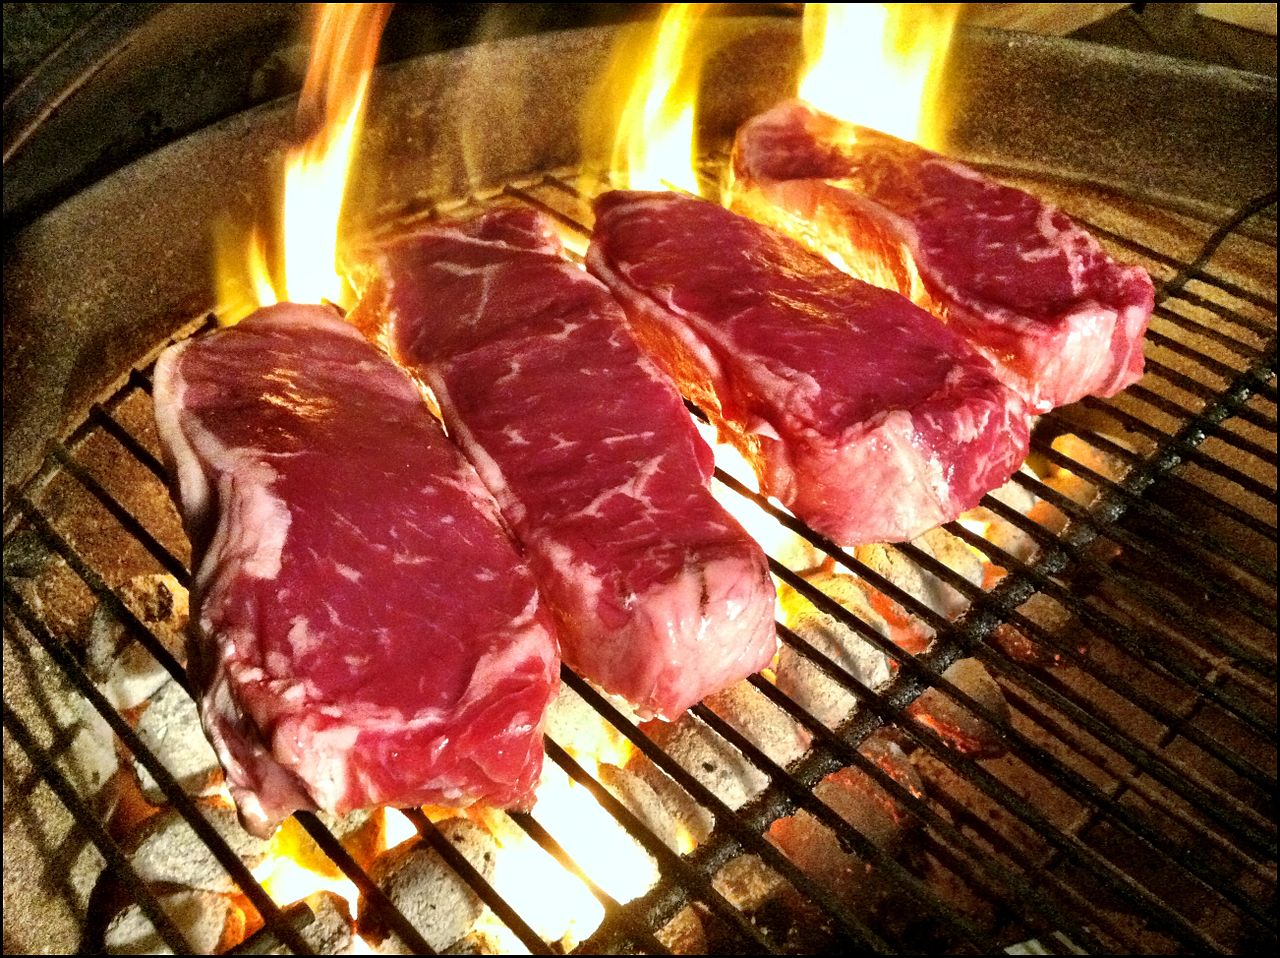 Grilling_Steaks on bbq